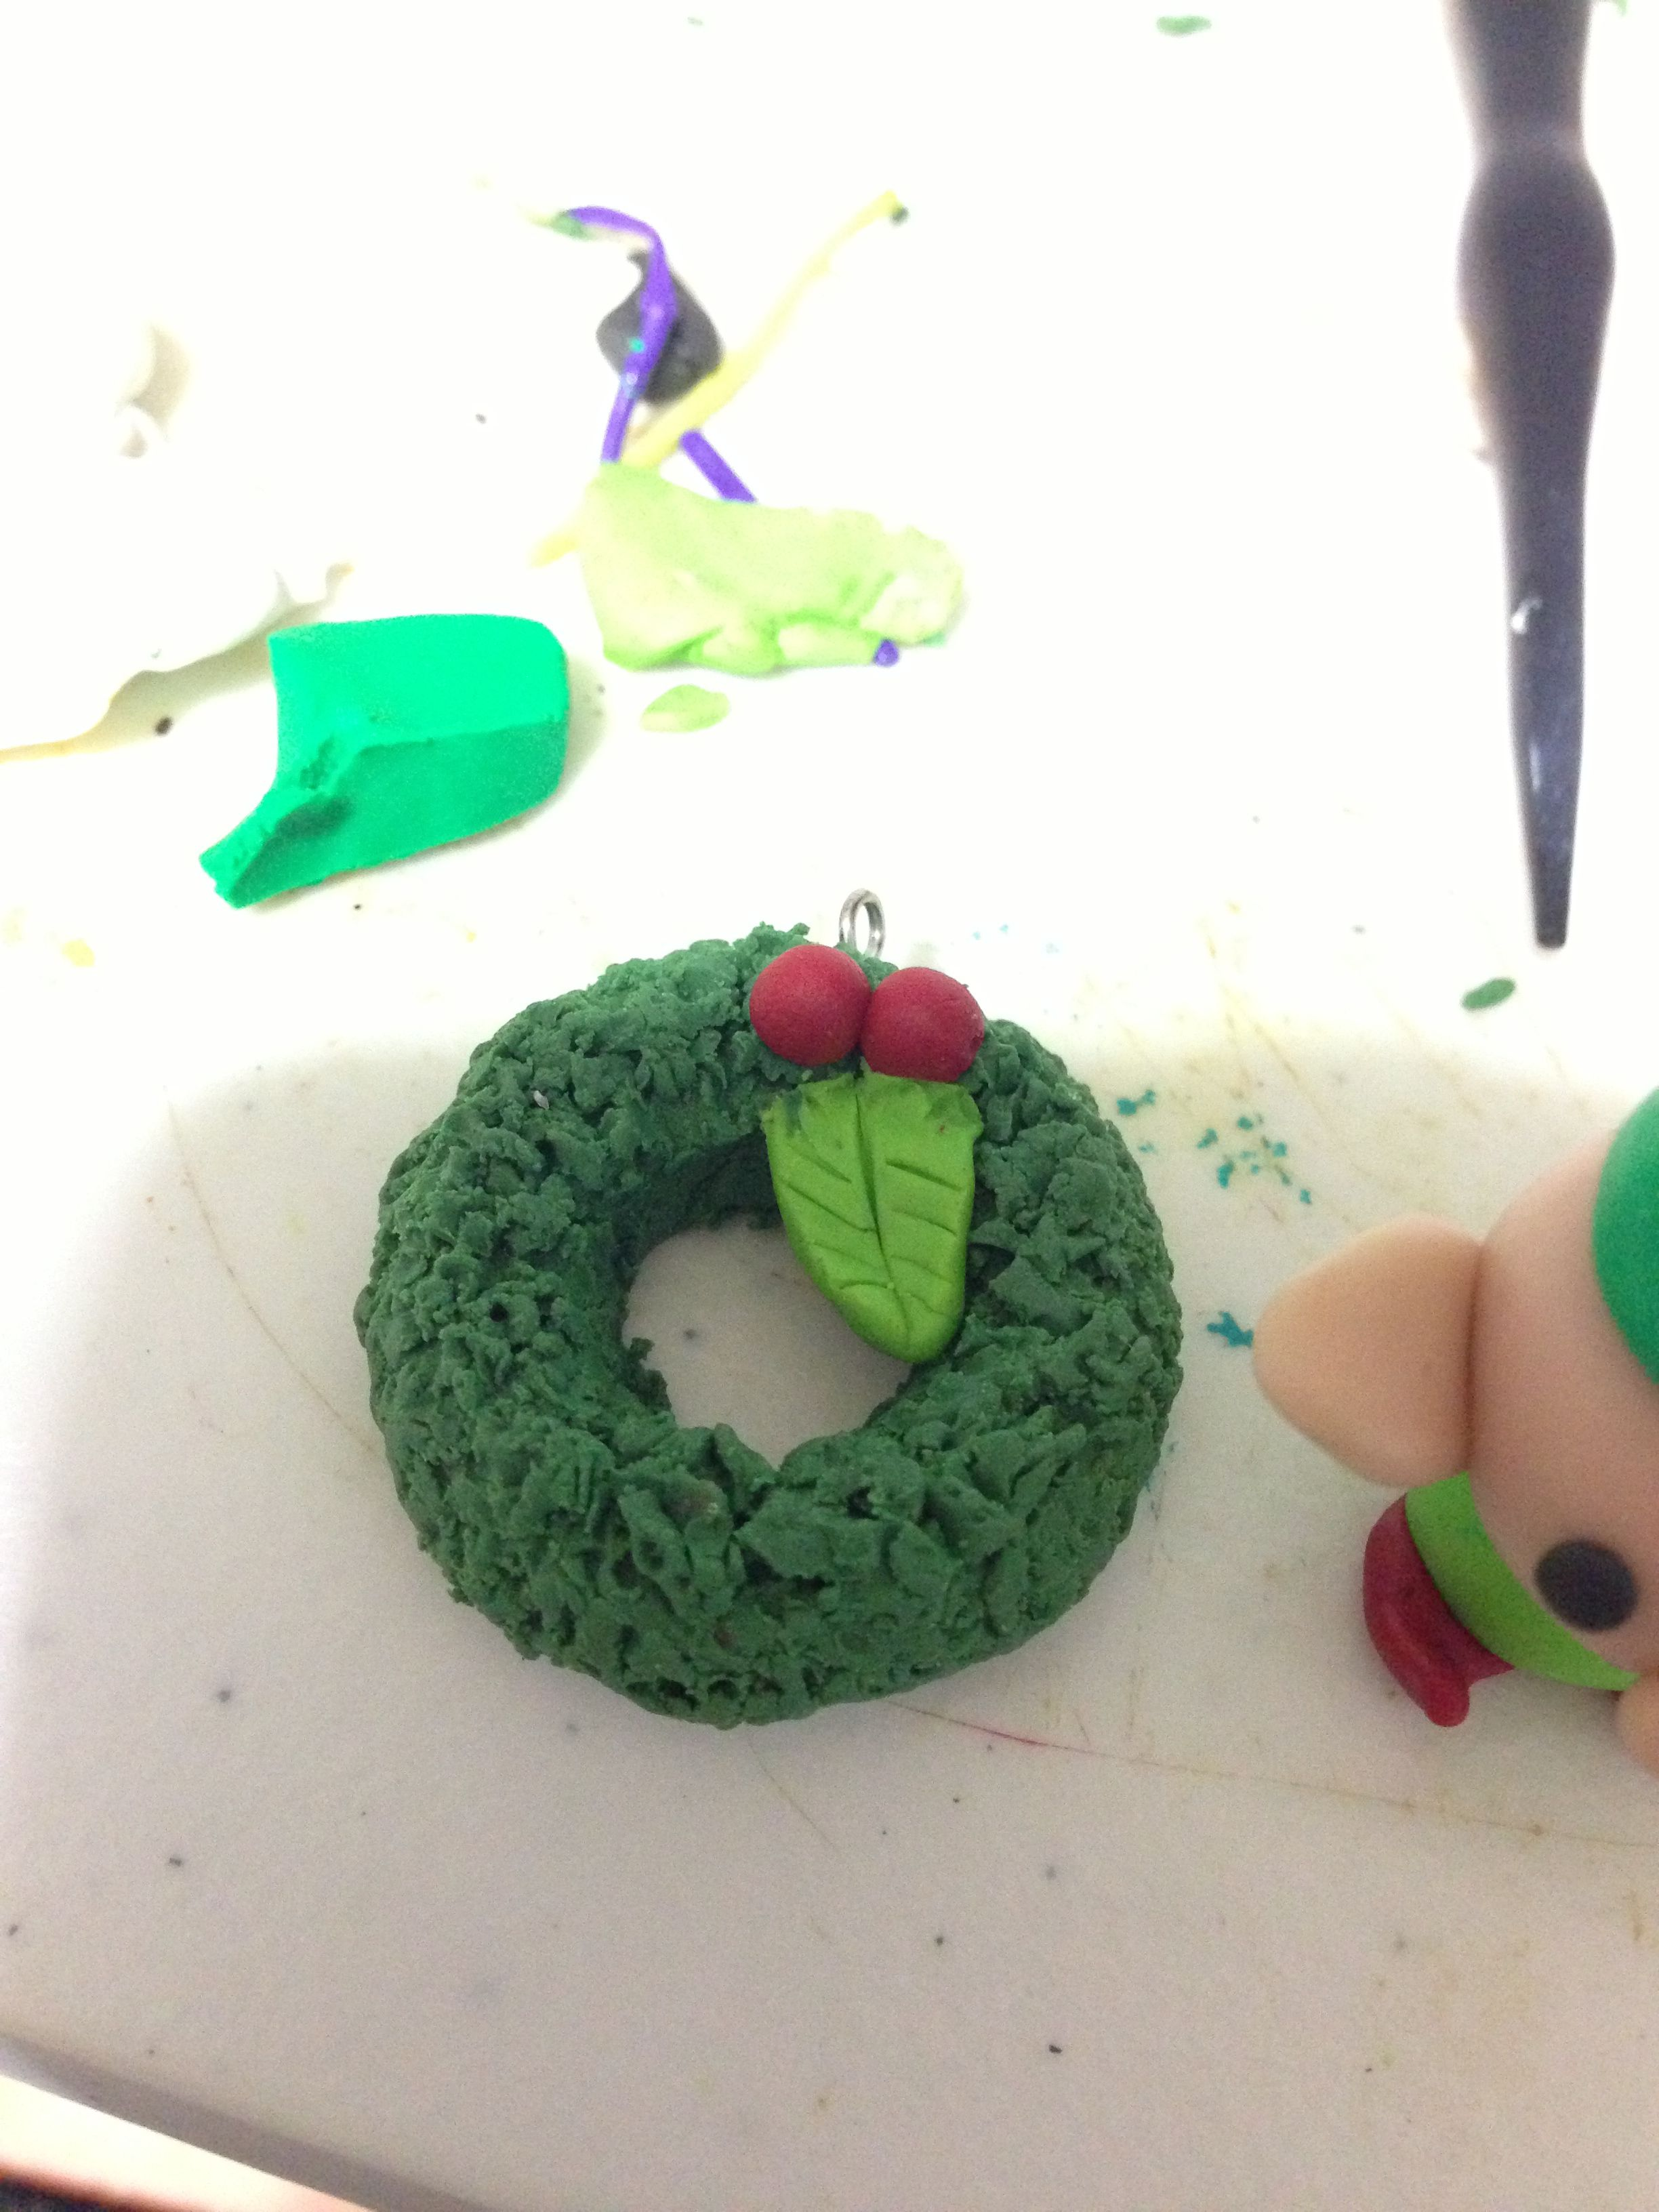 Cute Clay Reath With Mistletoe It Was Really Fun To